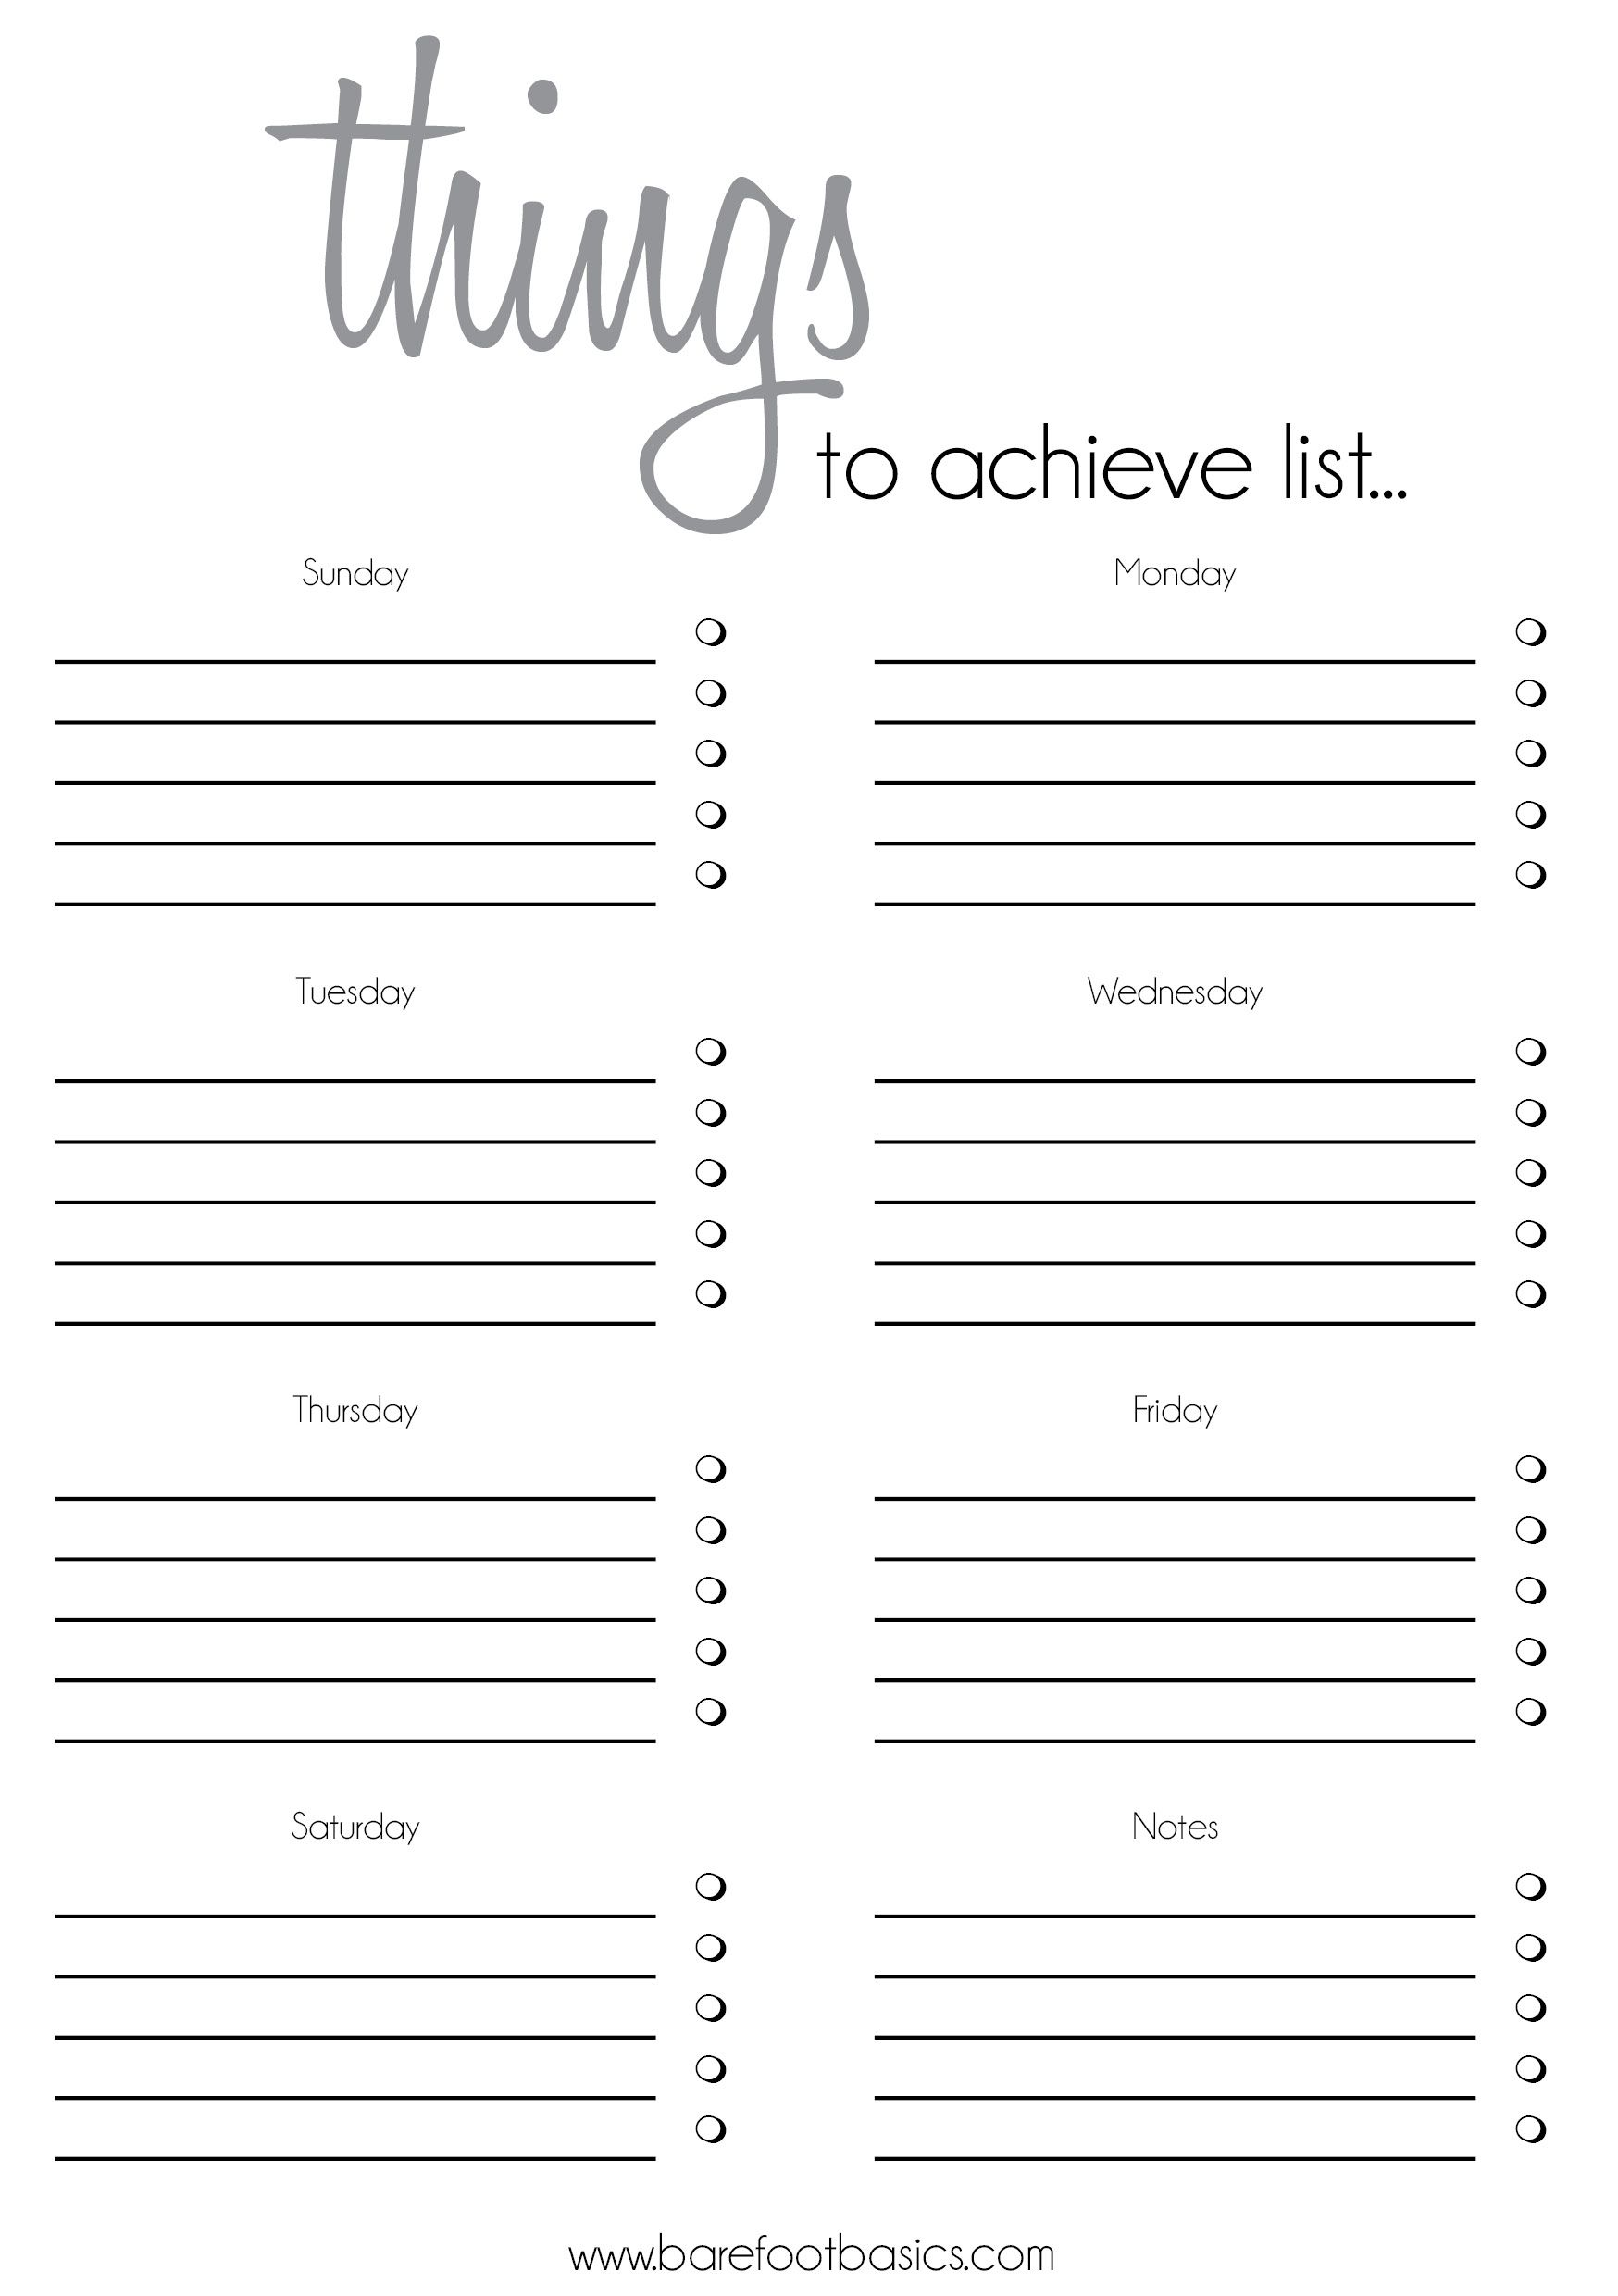 Exceptionnel To Do List Template | Rochelle Stone – Barefoot Basics – Soul  RR63